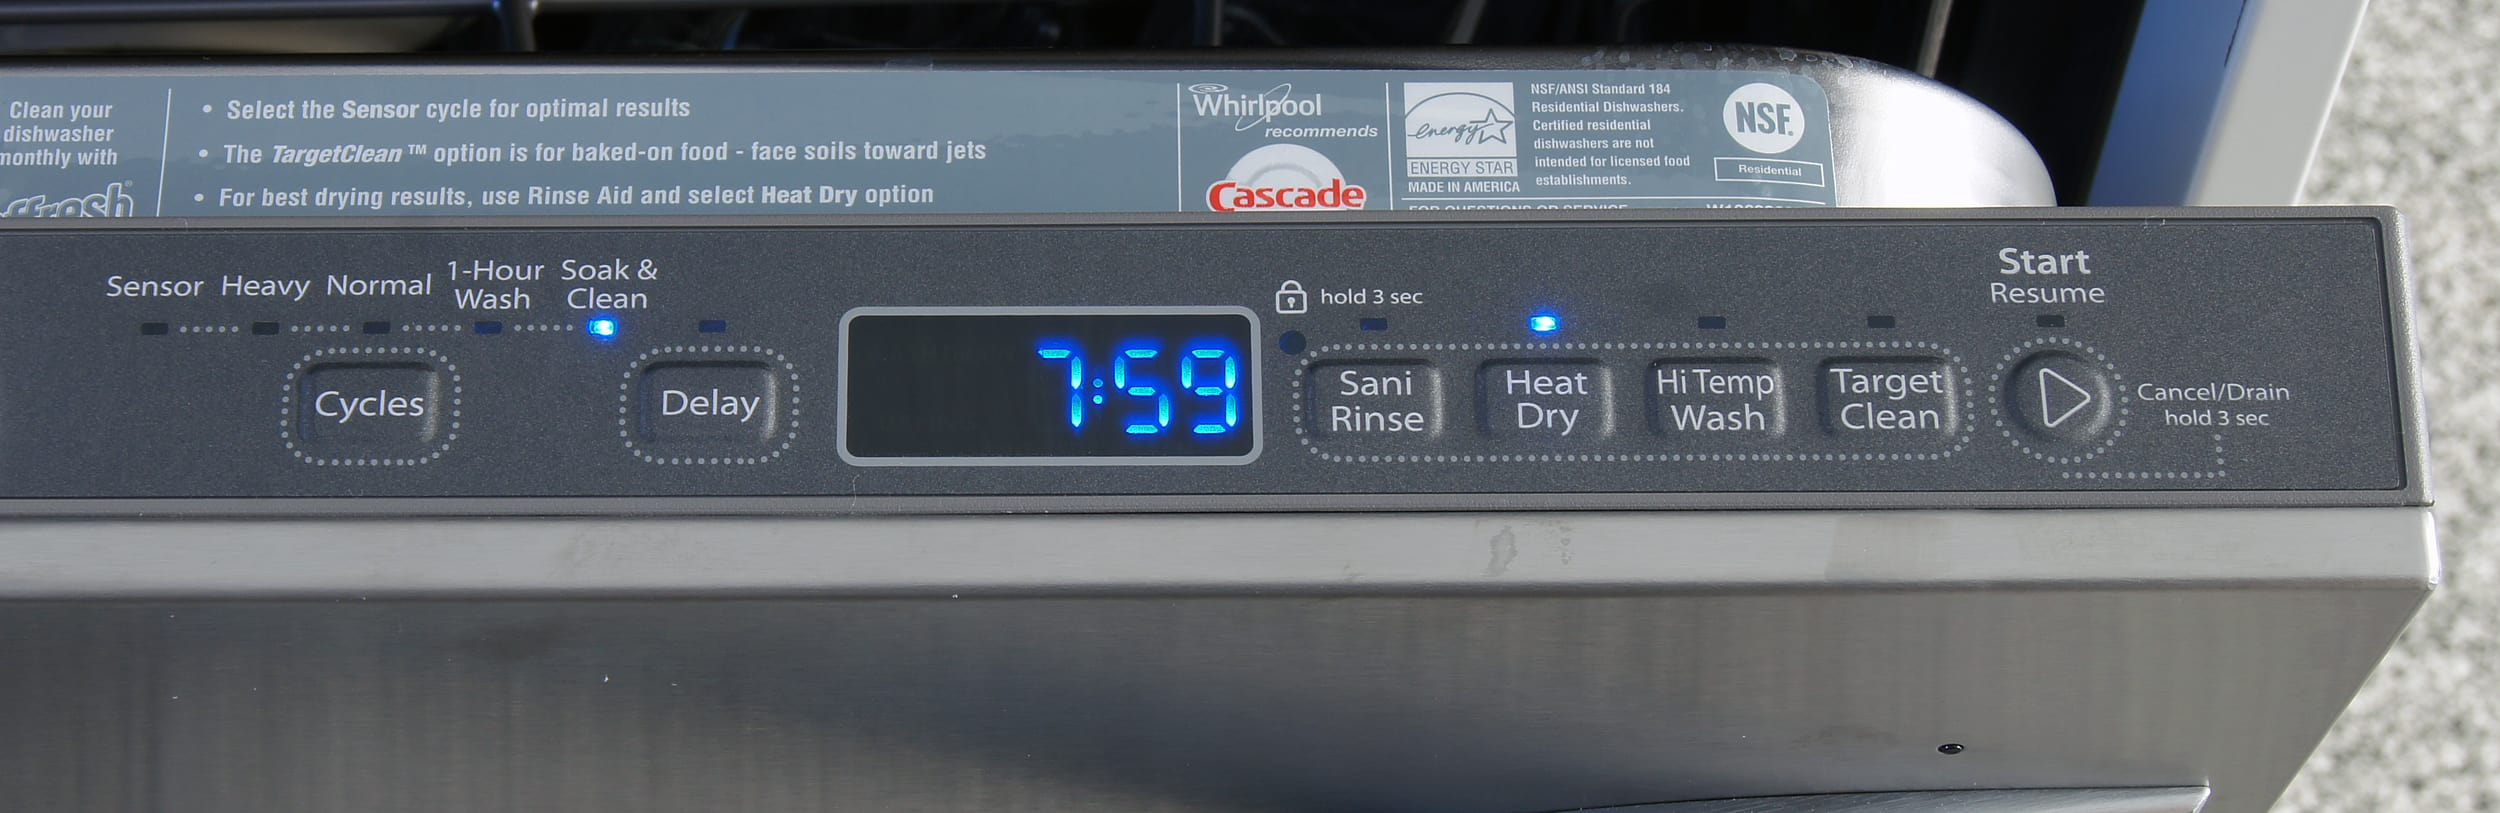 Whirlpool Gold Wdt920sadm Dishwasher Review Reviewed